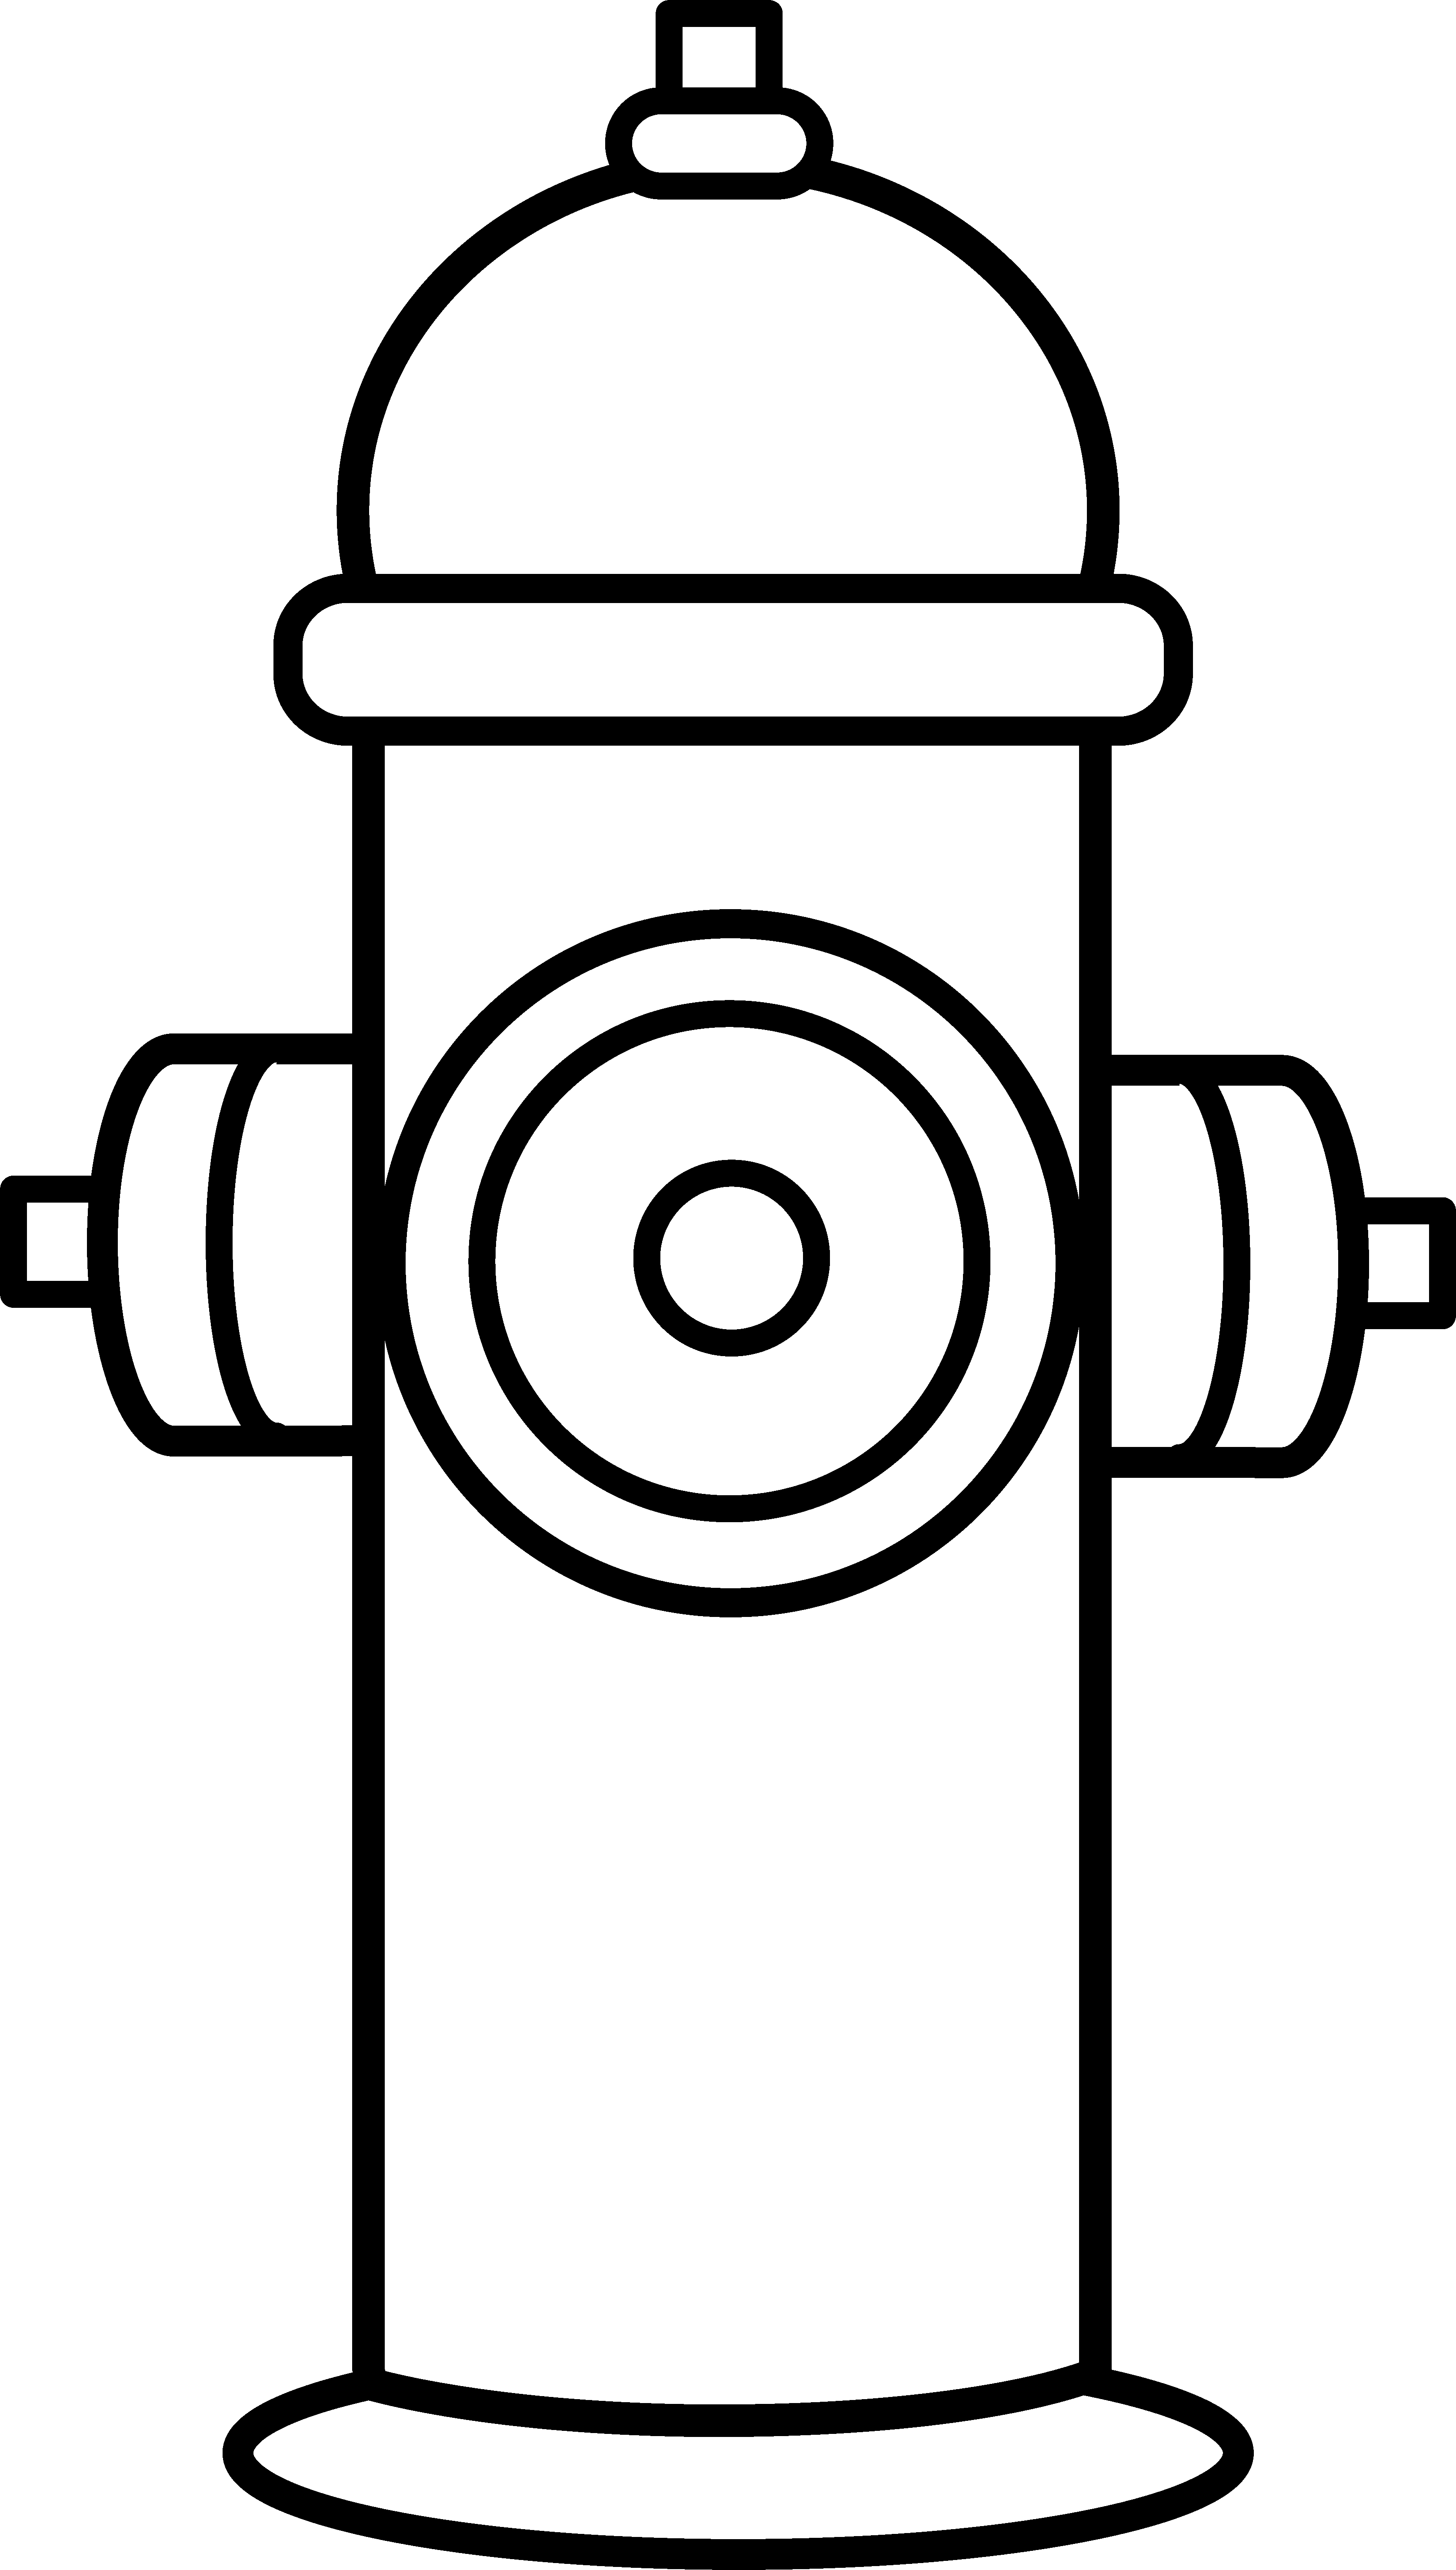 Fire Hydrant Black And White Clipart at Dynamic pickaxe 2019.